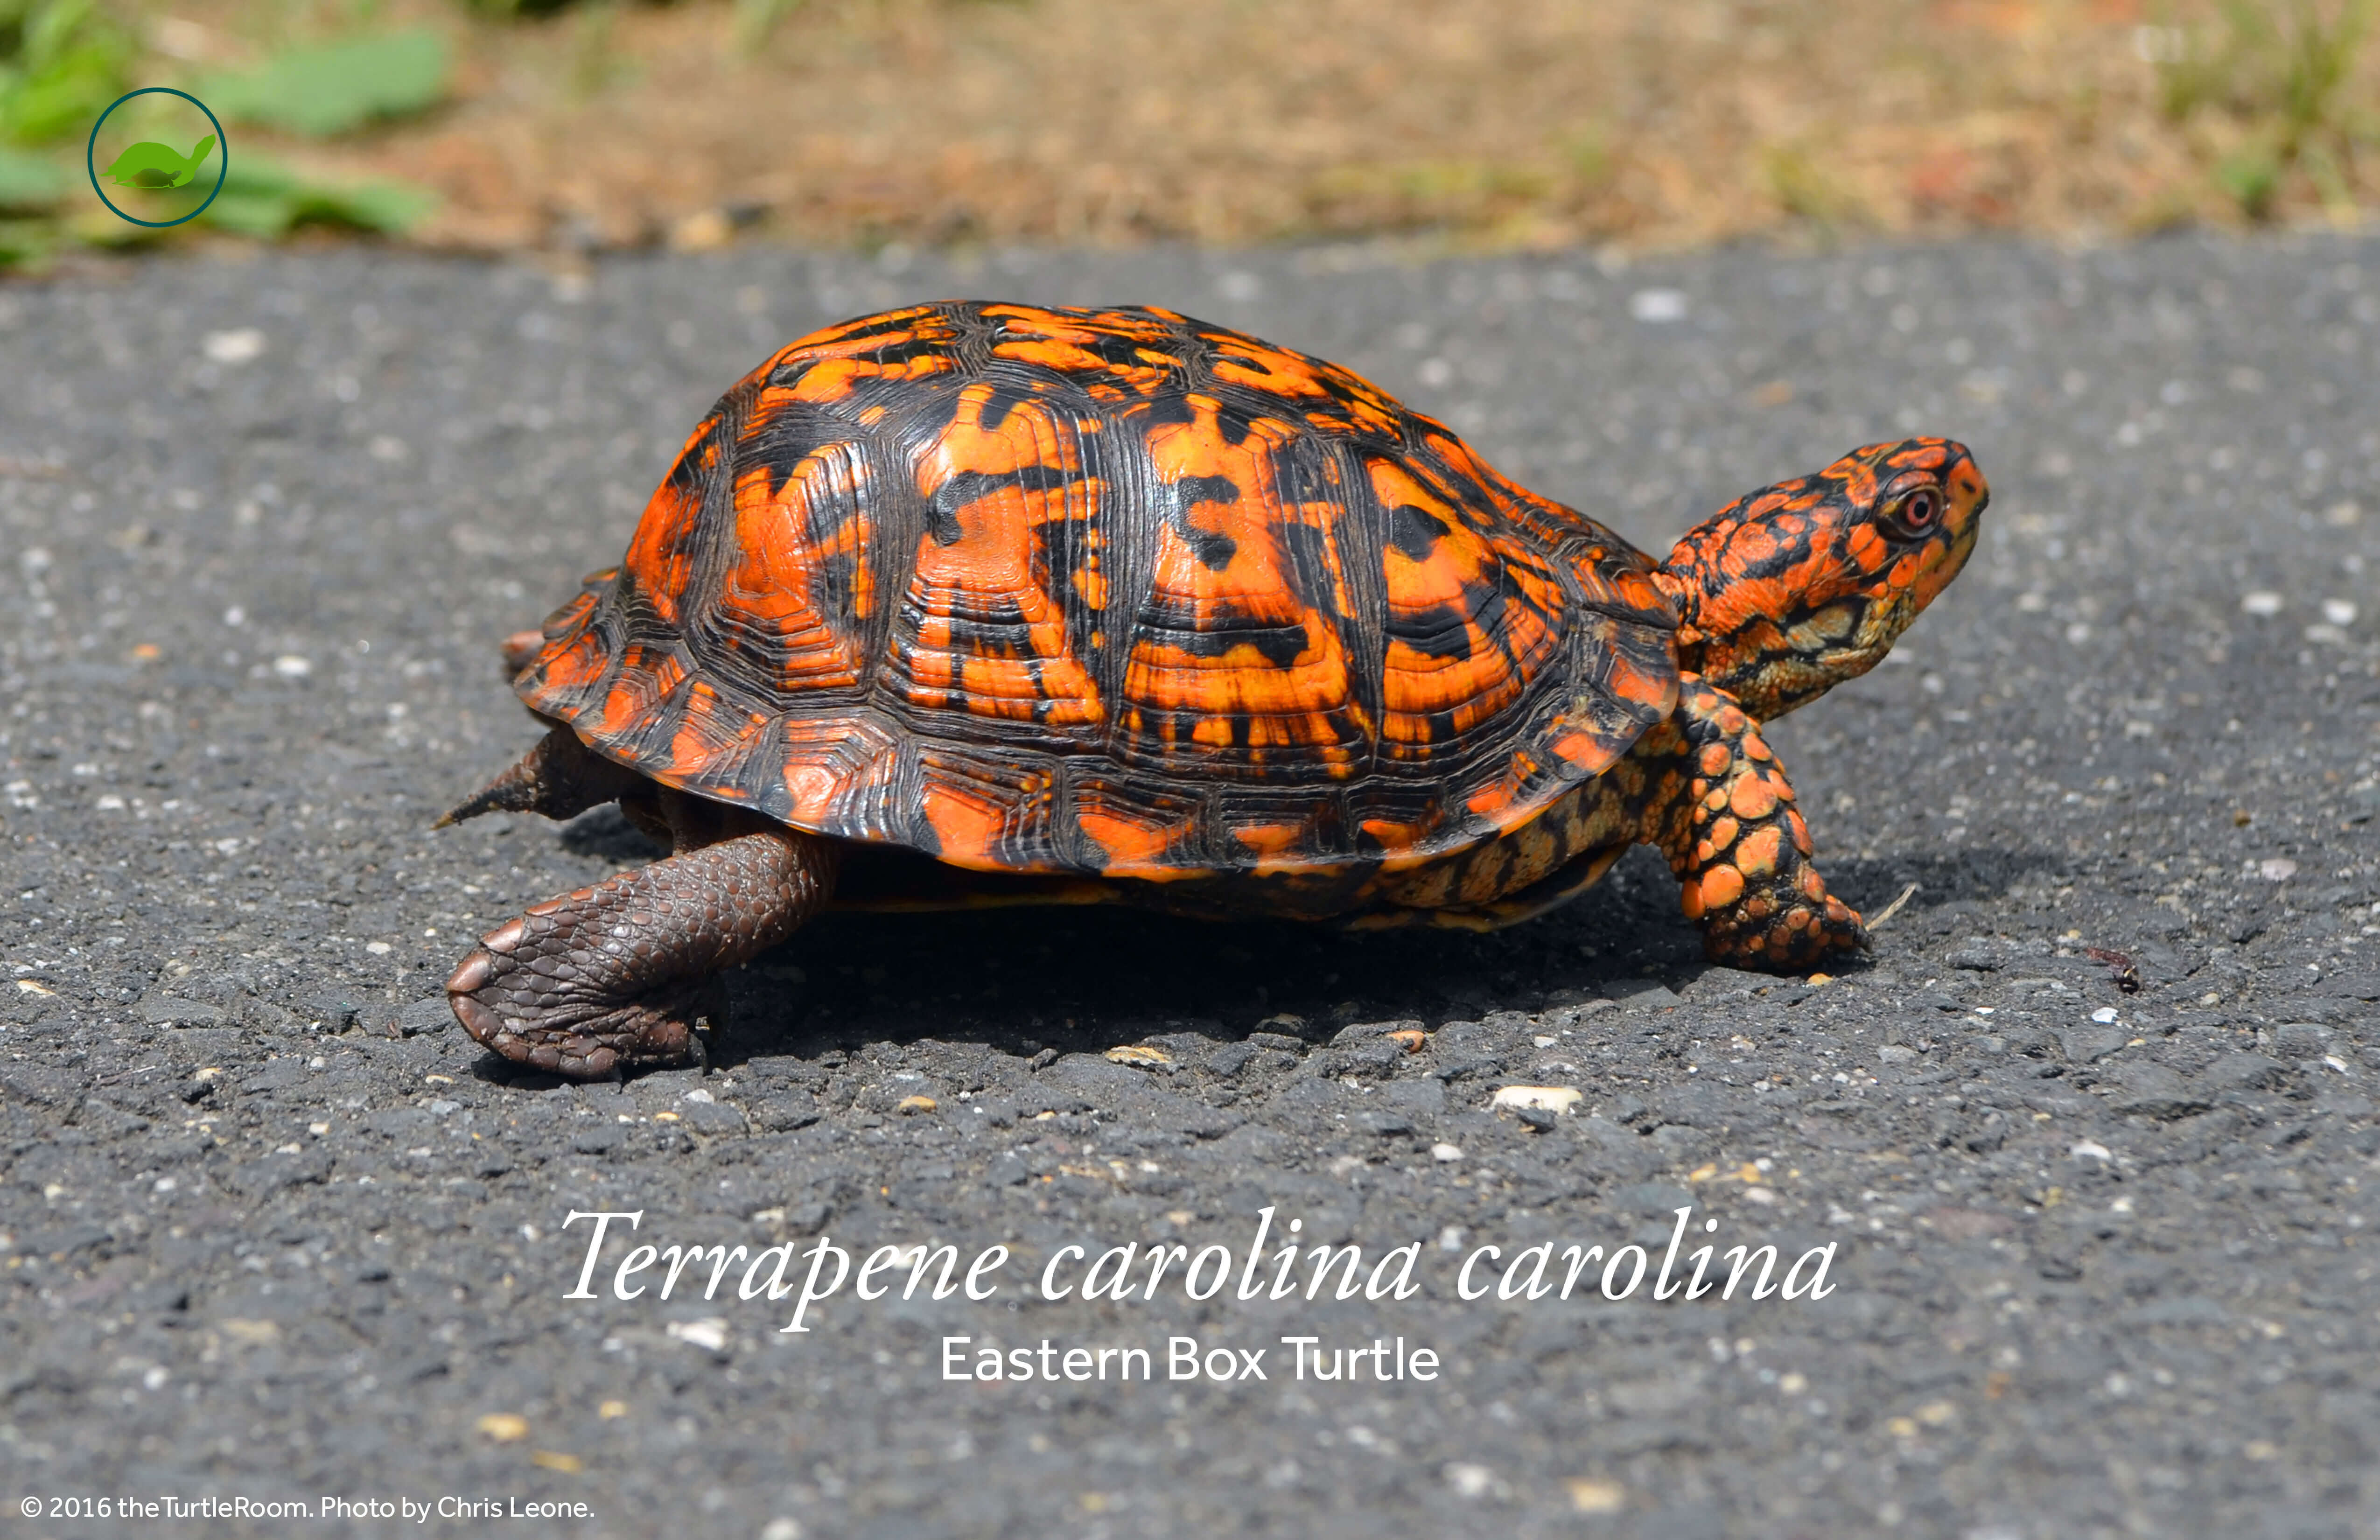 Terrapene carolina carolina (Eastern Box Turtle) Poster